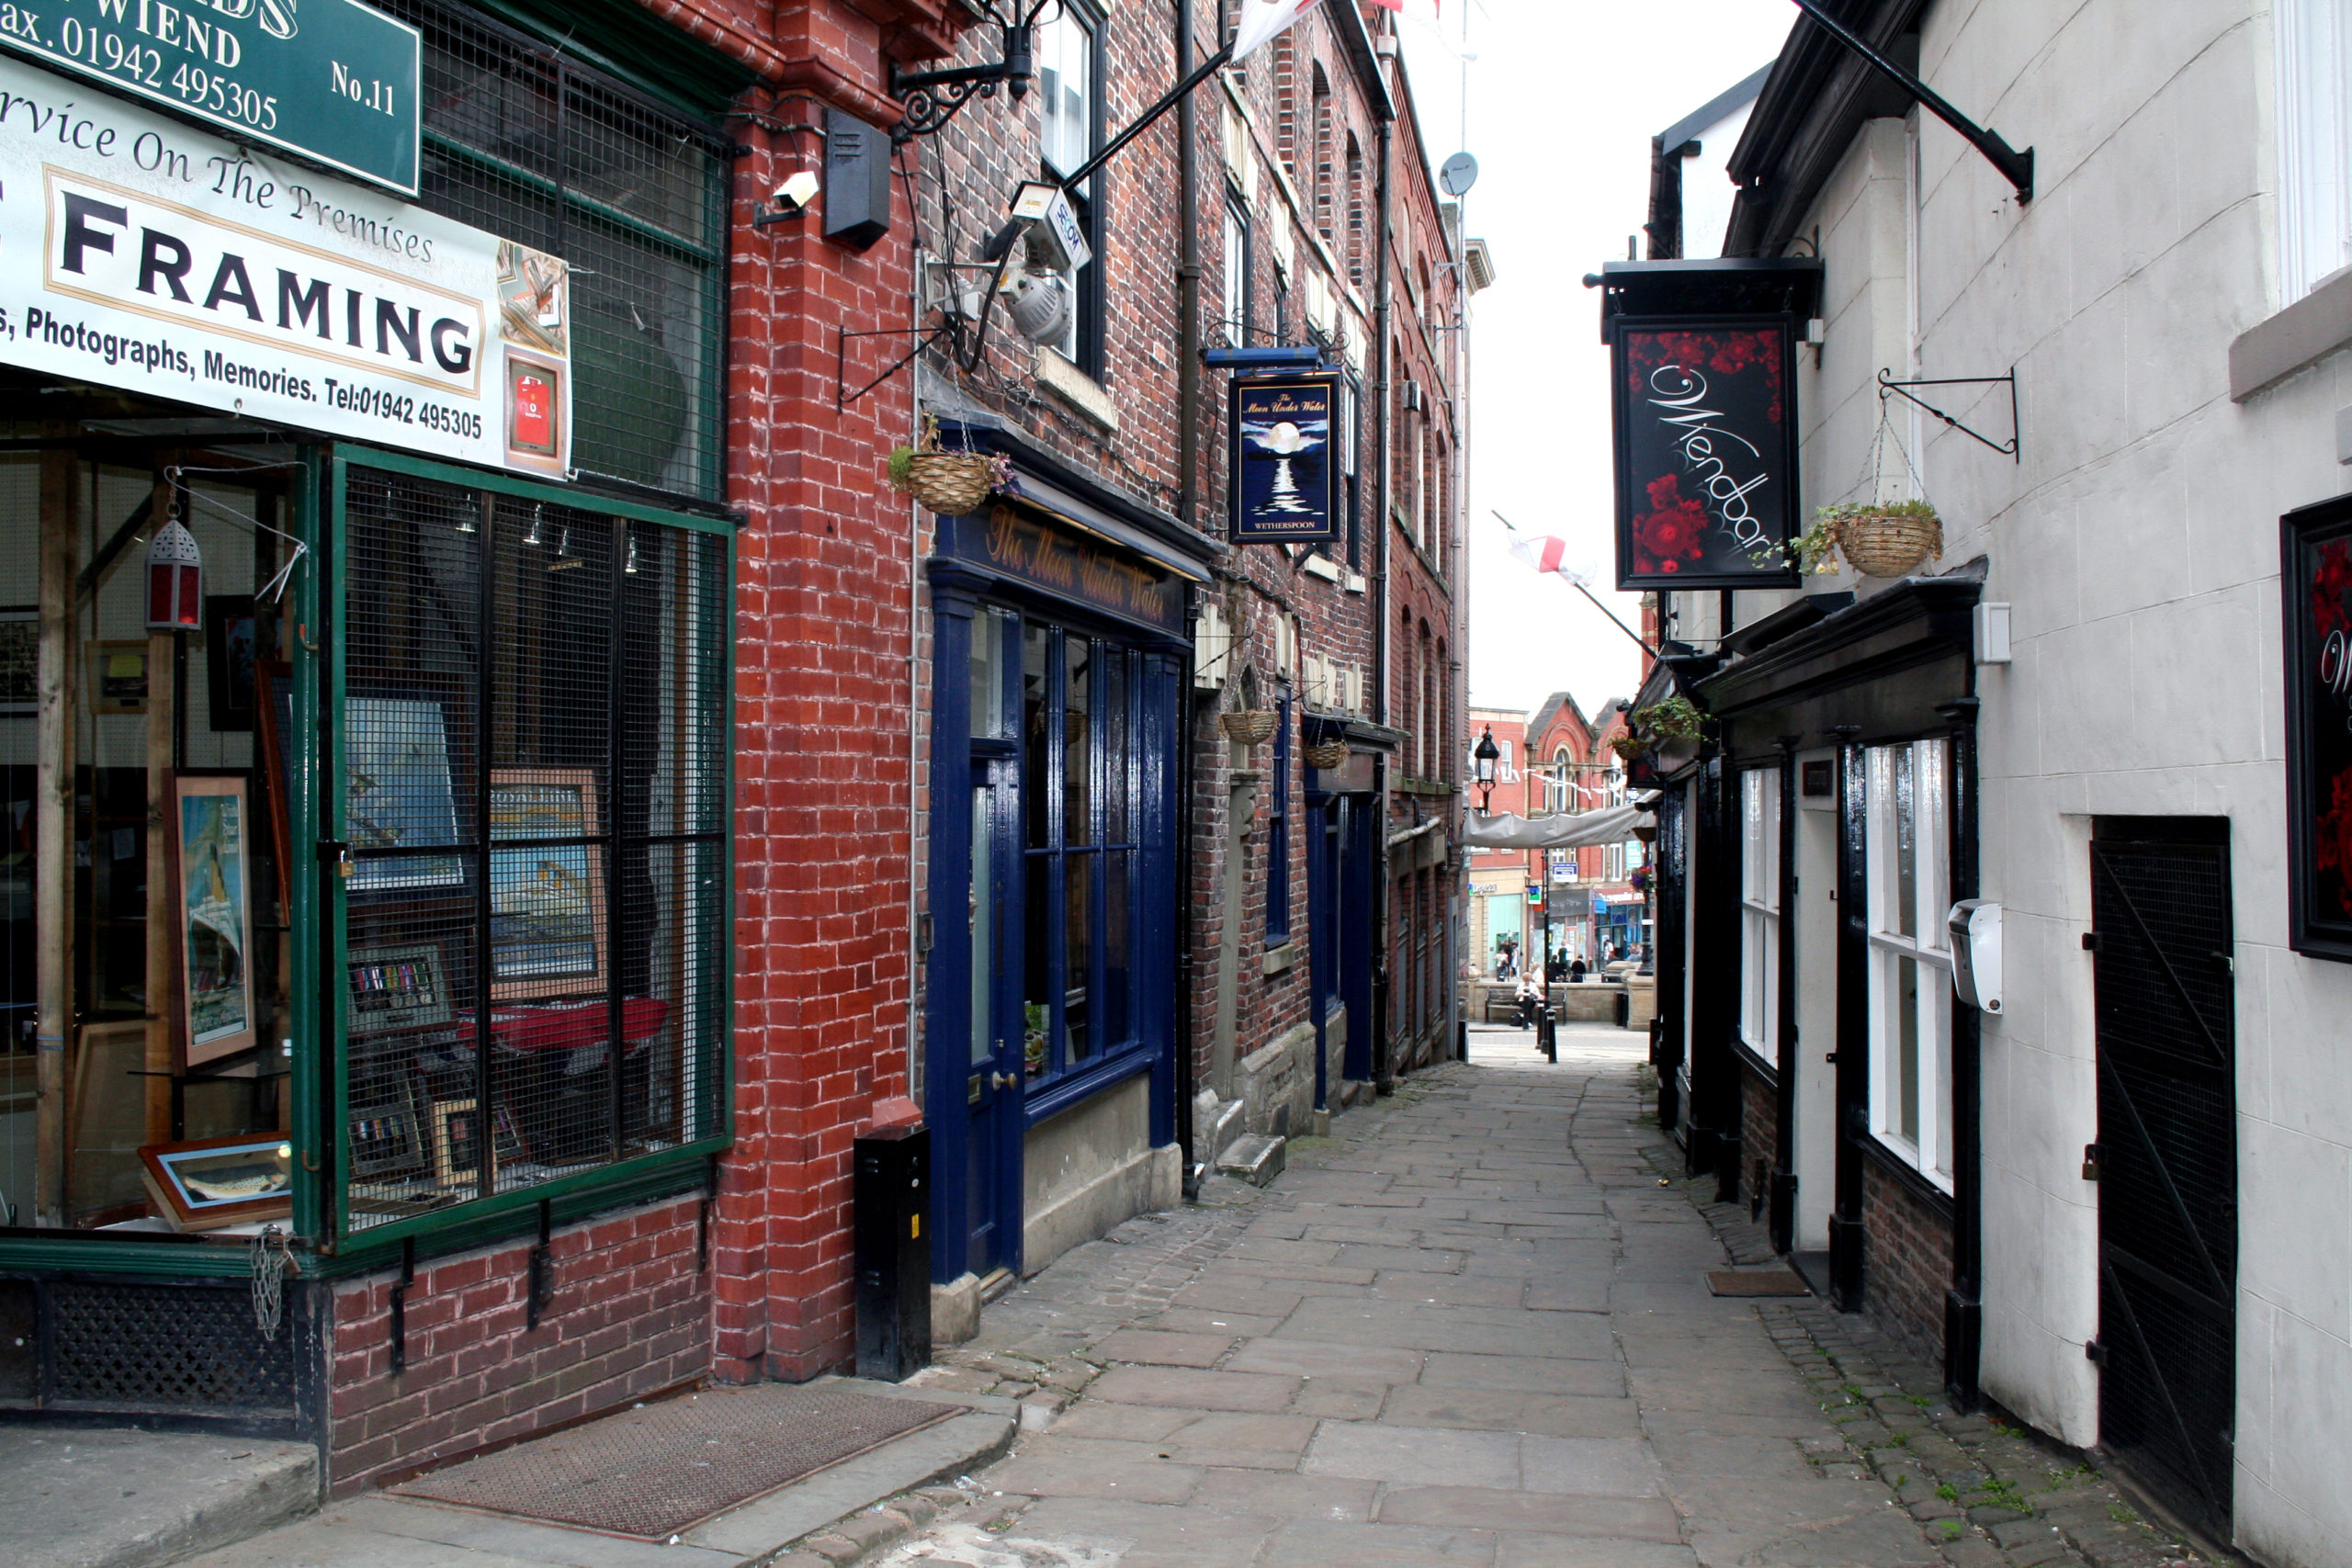 Wigan Arts and Culture